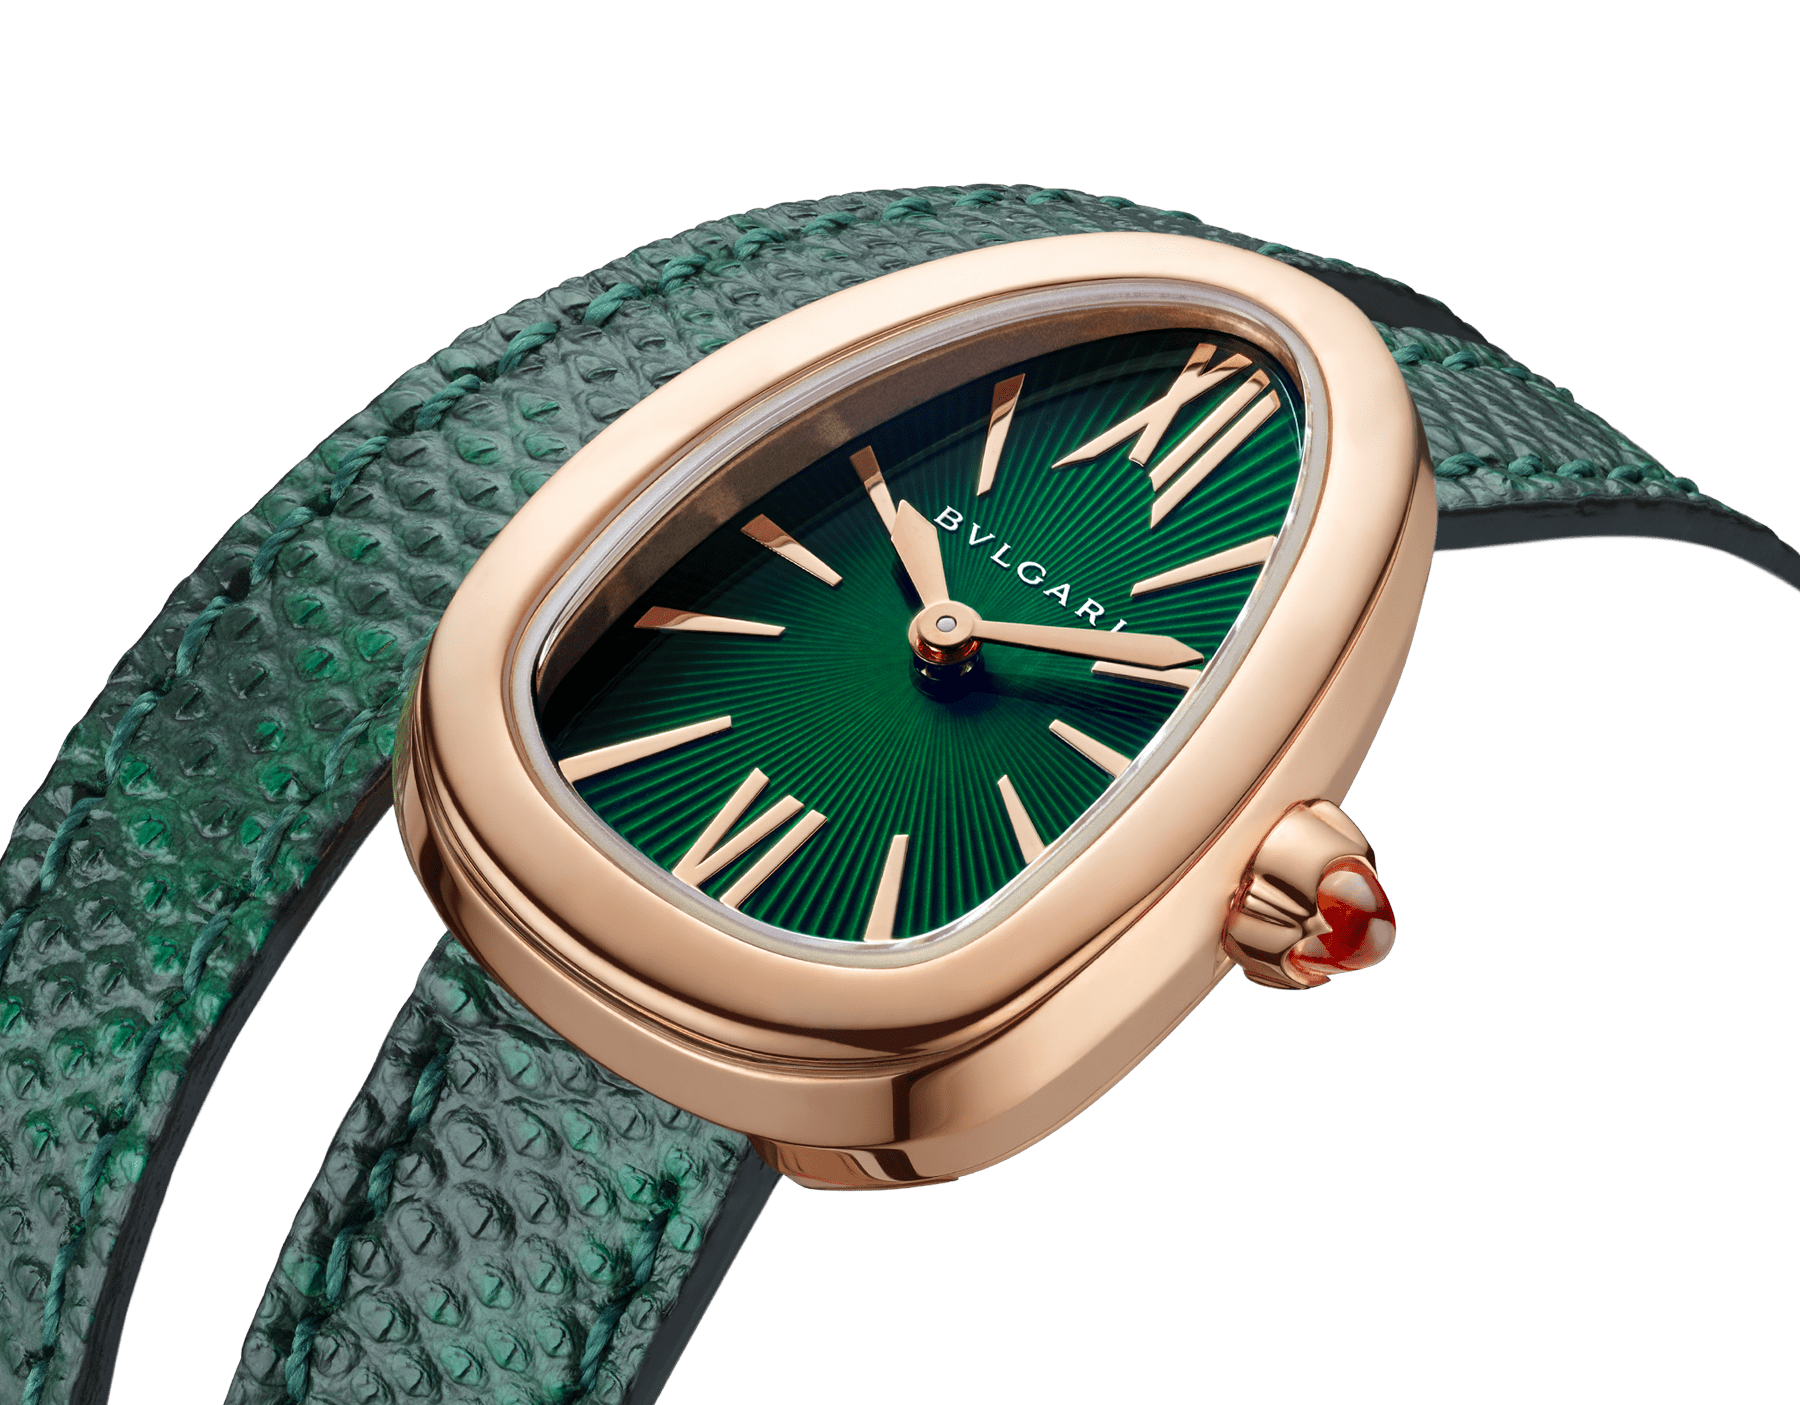 Serpenti watch with 18 kt rose gold case, green lacquered dial and interchangeable double spiral bracelet in green karung leather. 102726 image 3